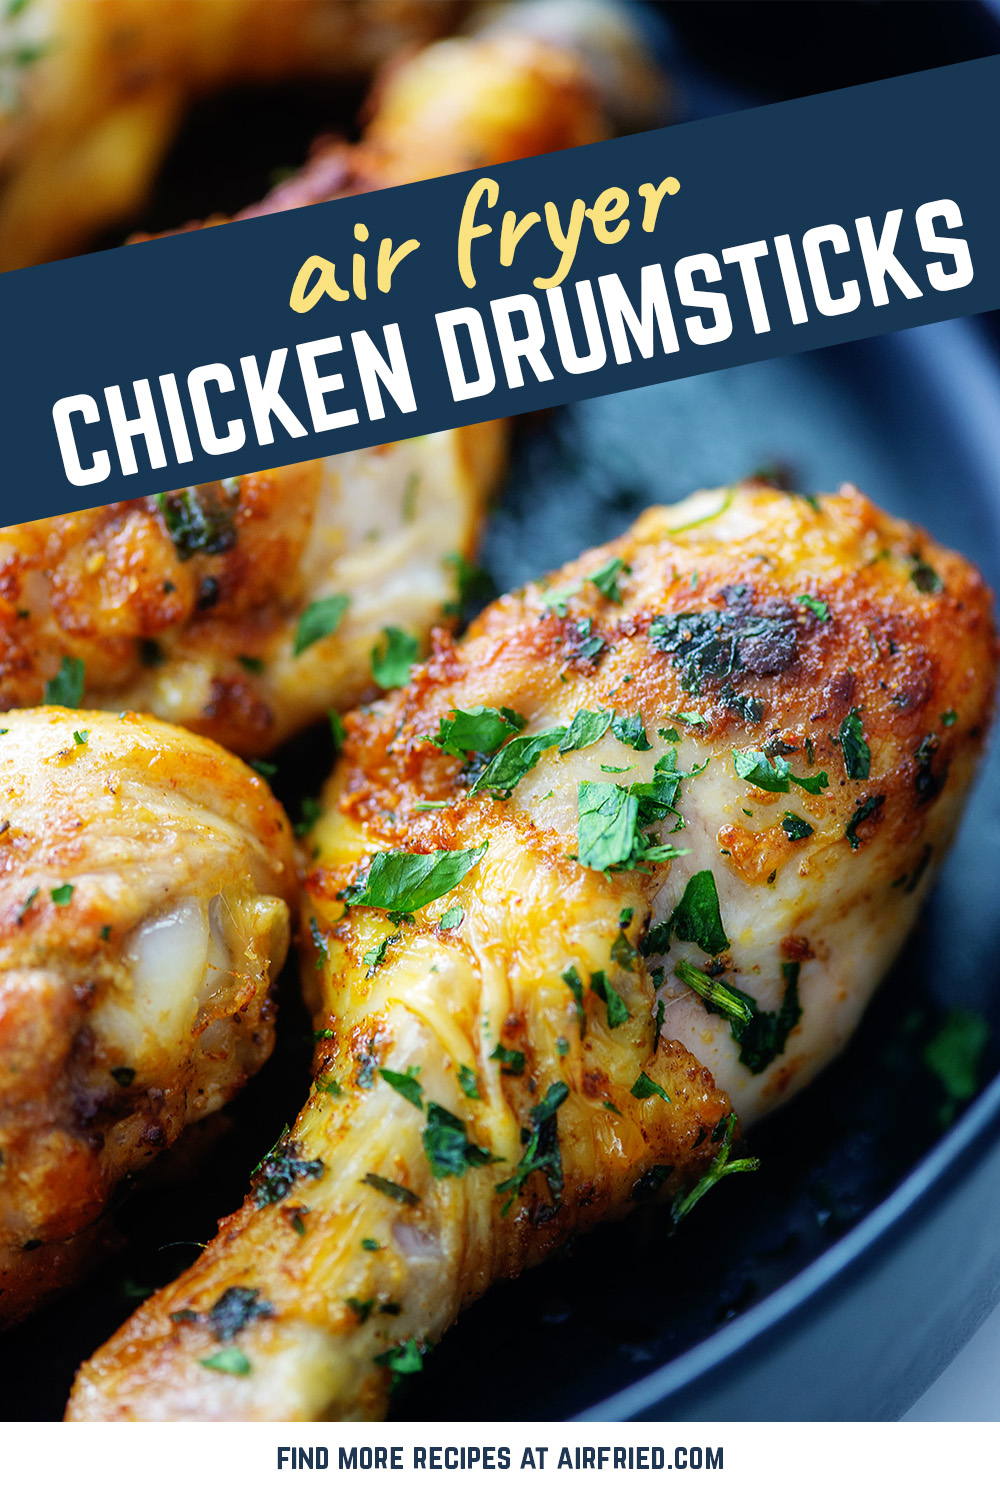 Chicken Legs turn out perfect in the air fryer! Moist inside, crispy outside, and so quick and easy!